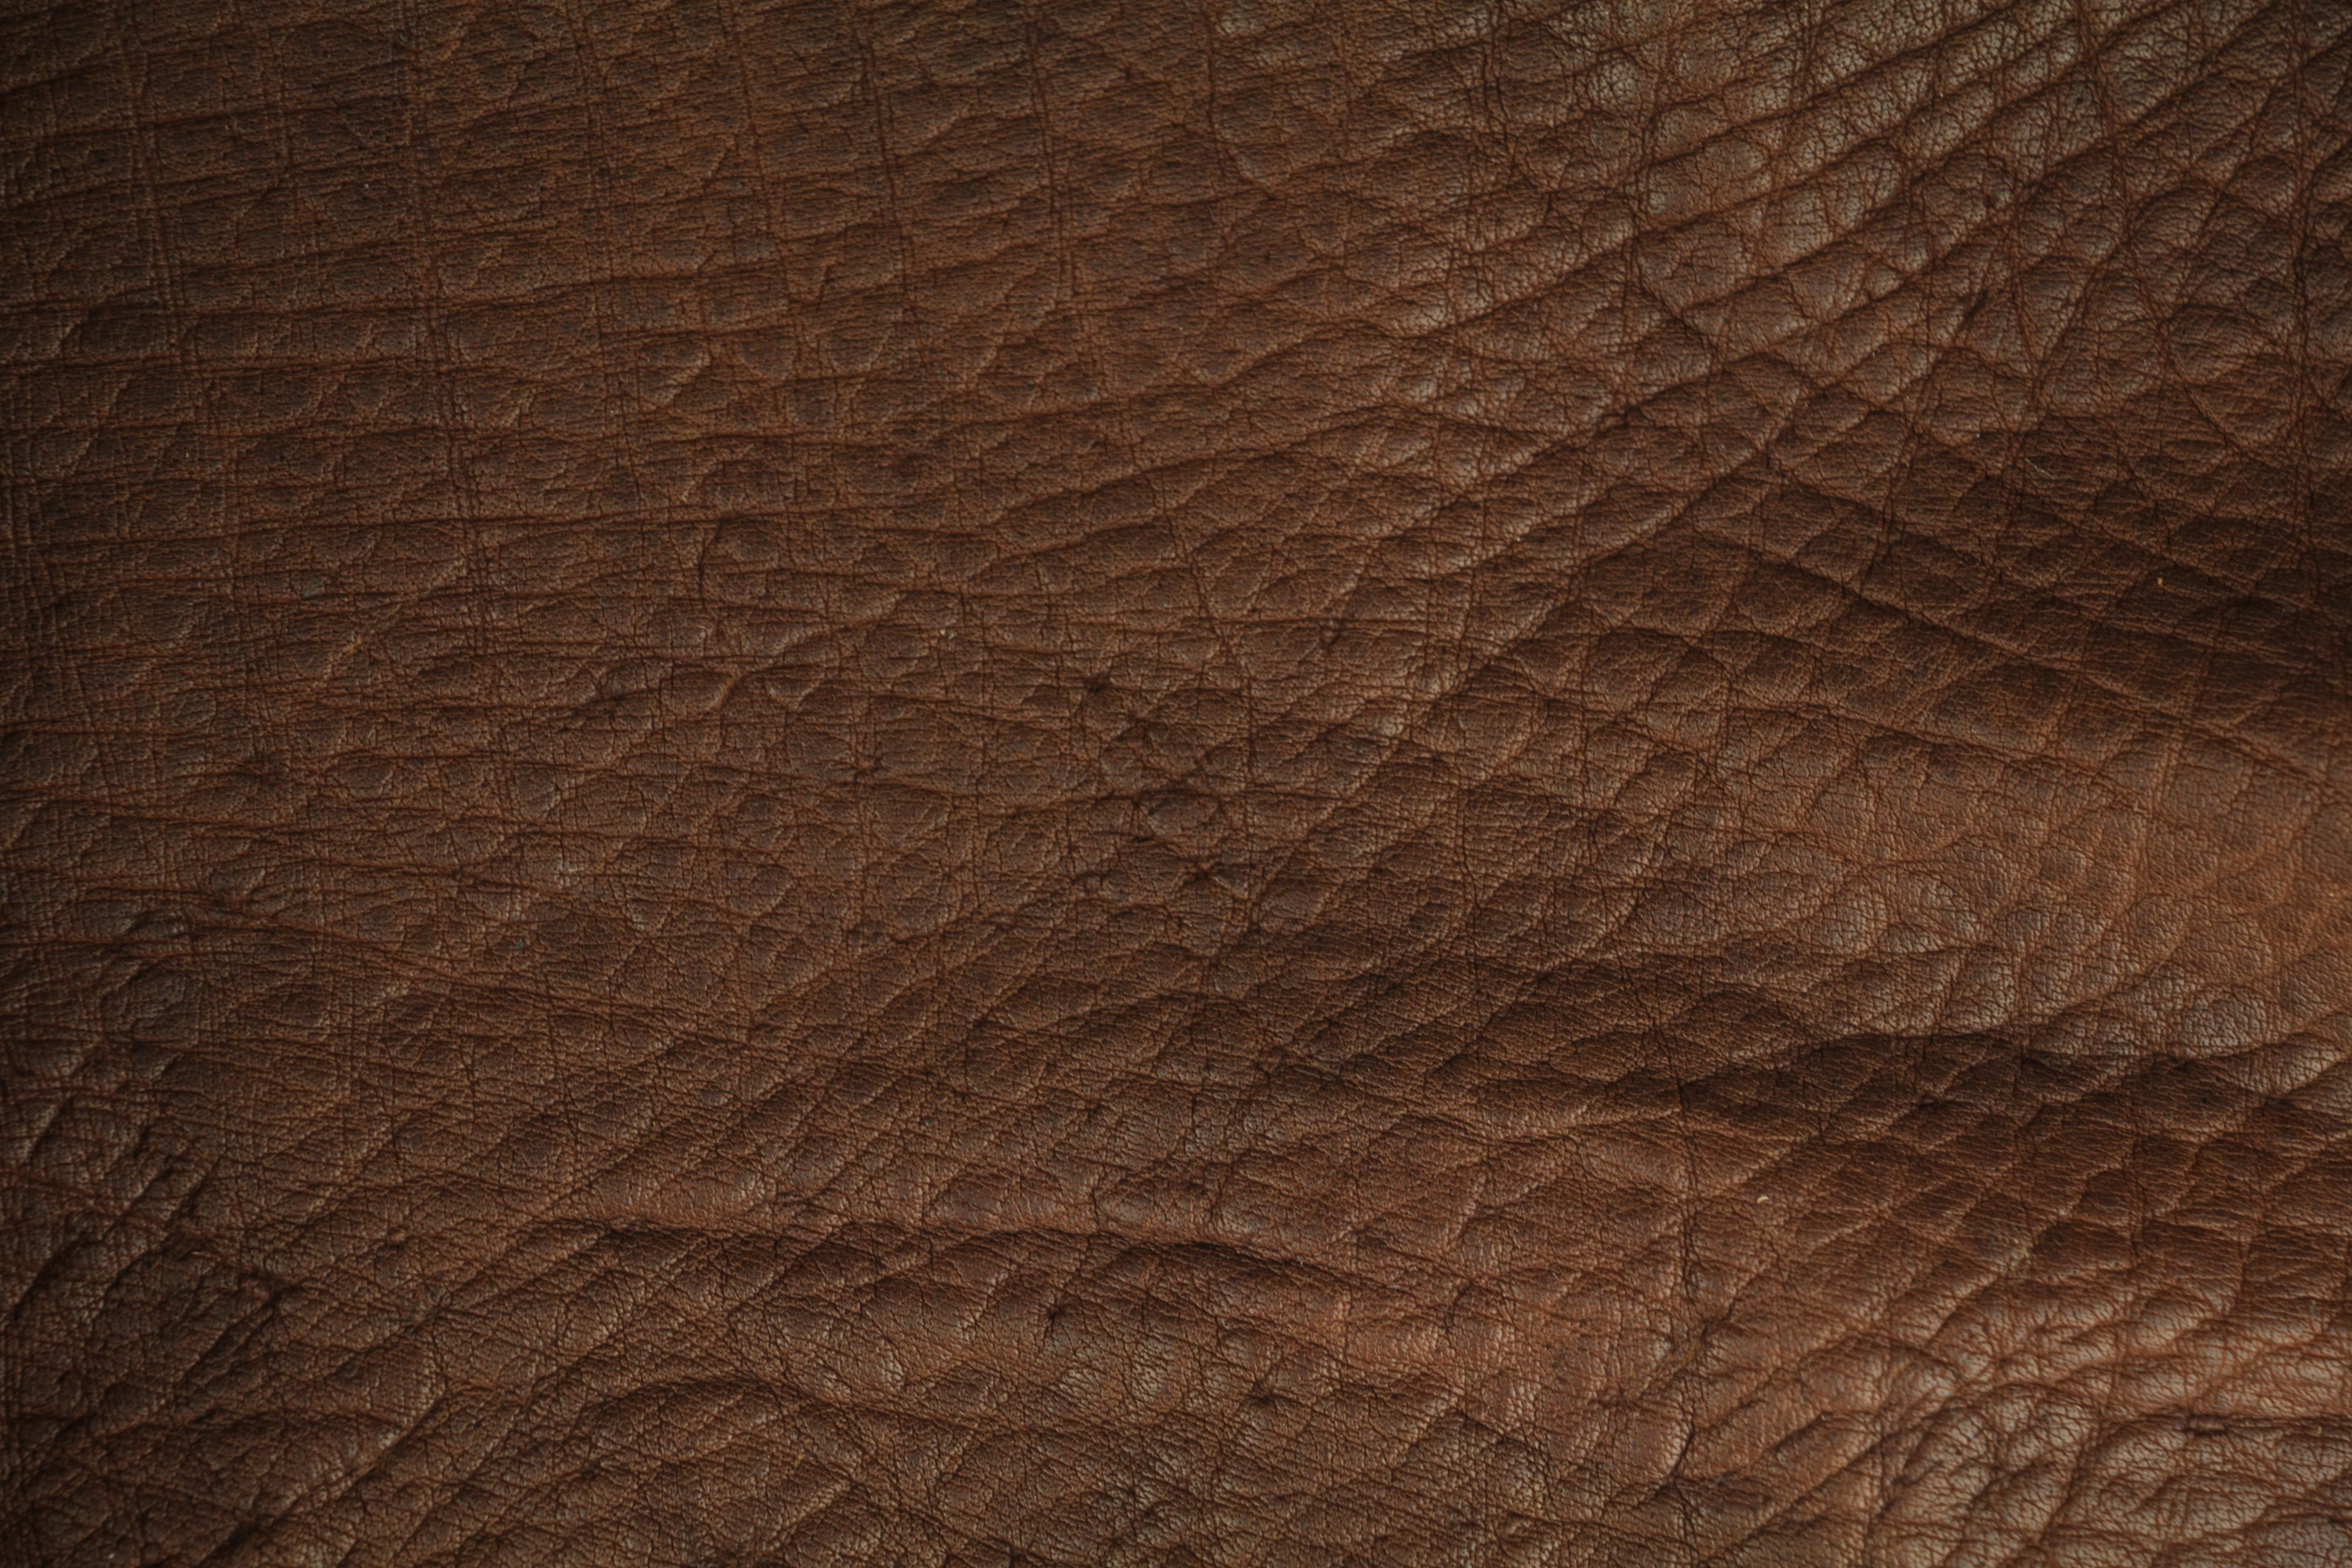 Leather Textures Texture X